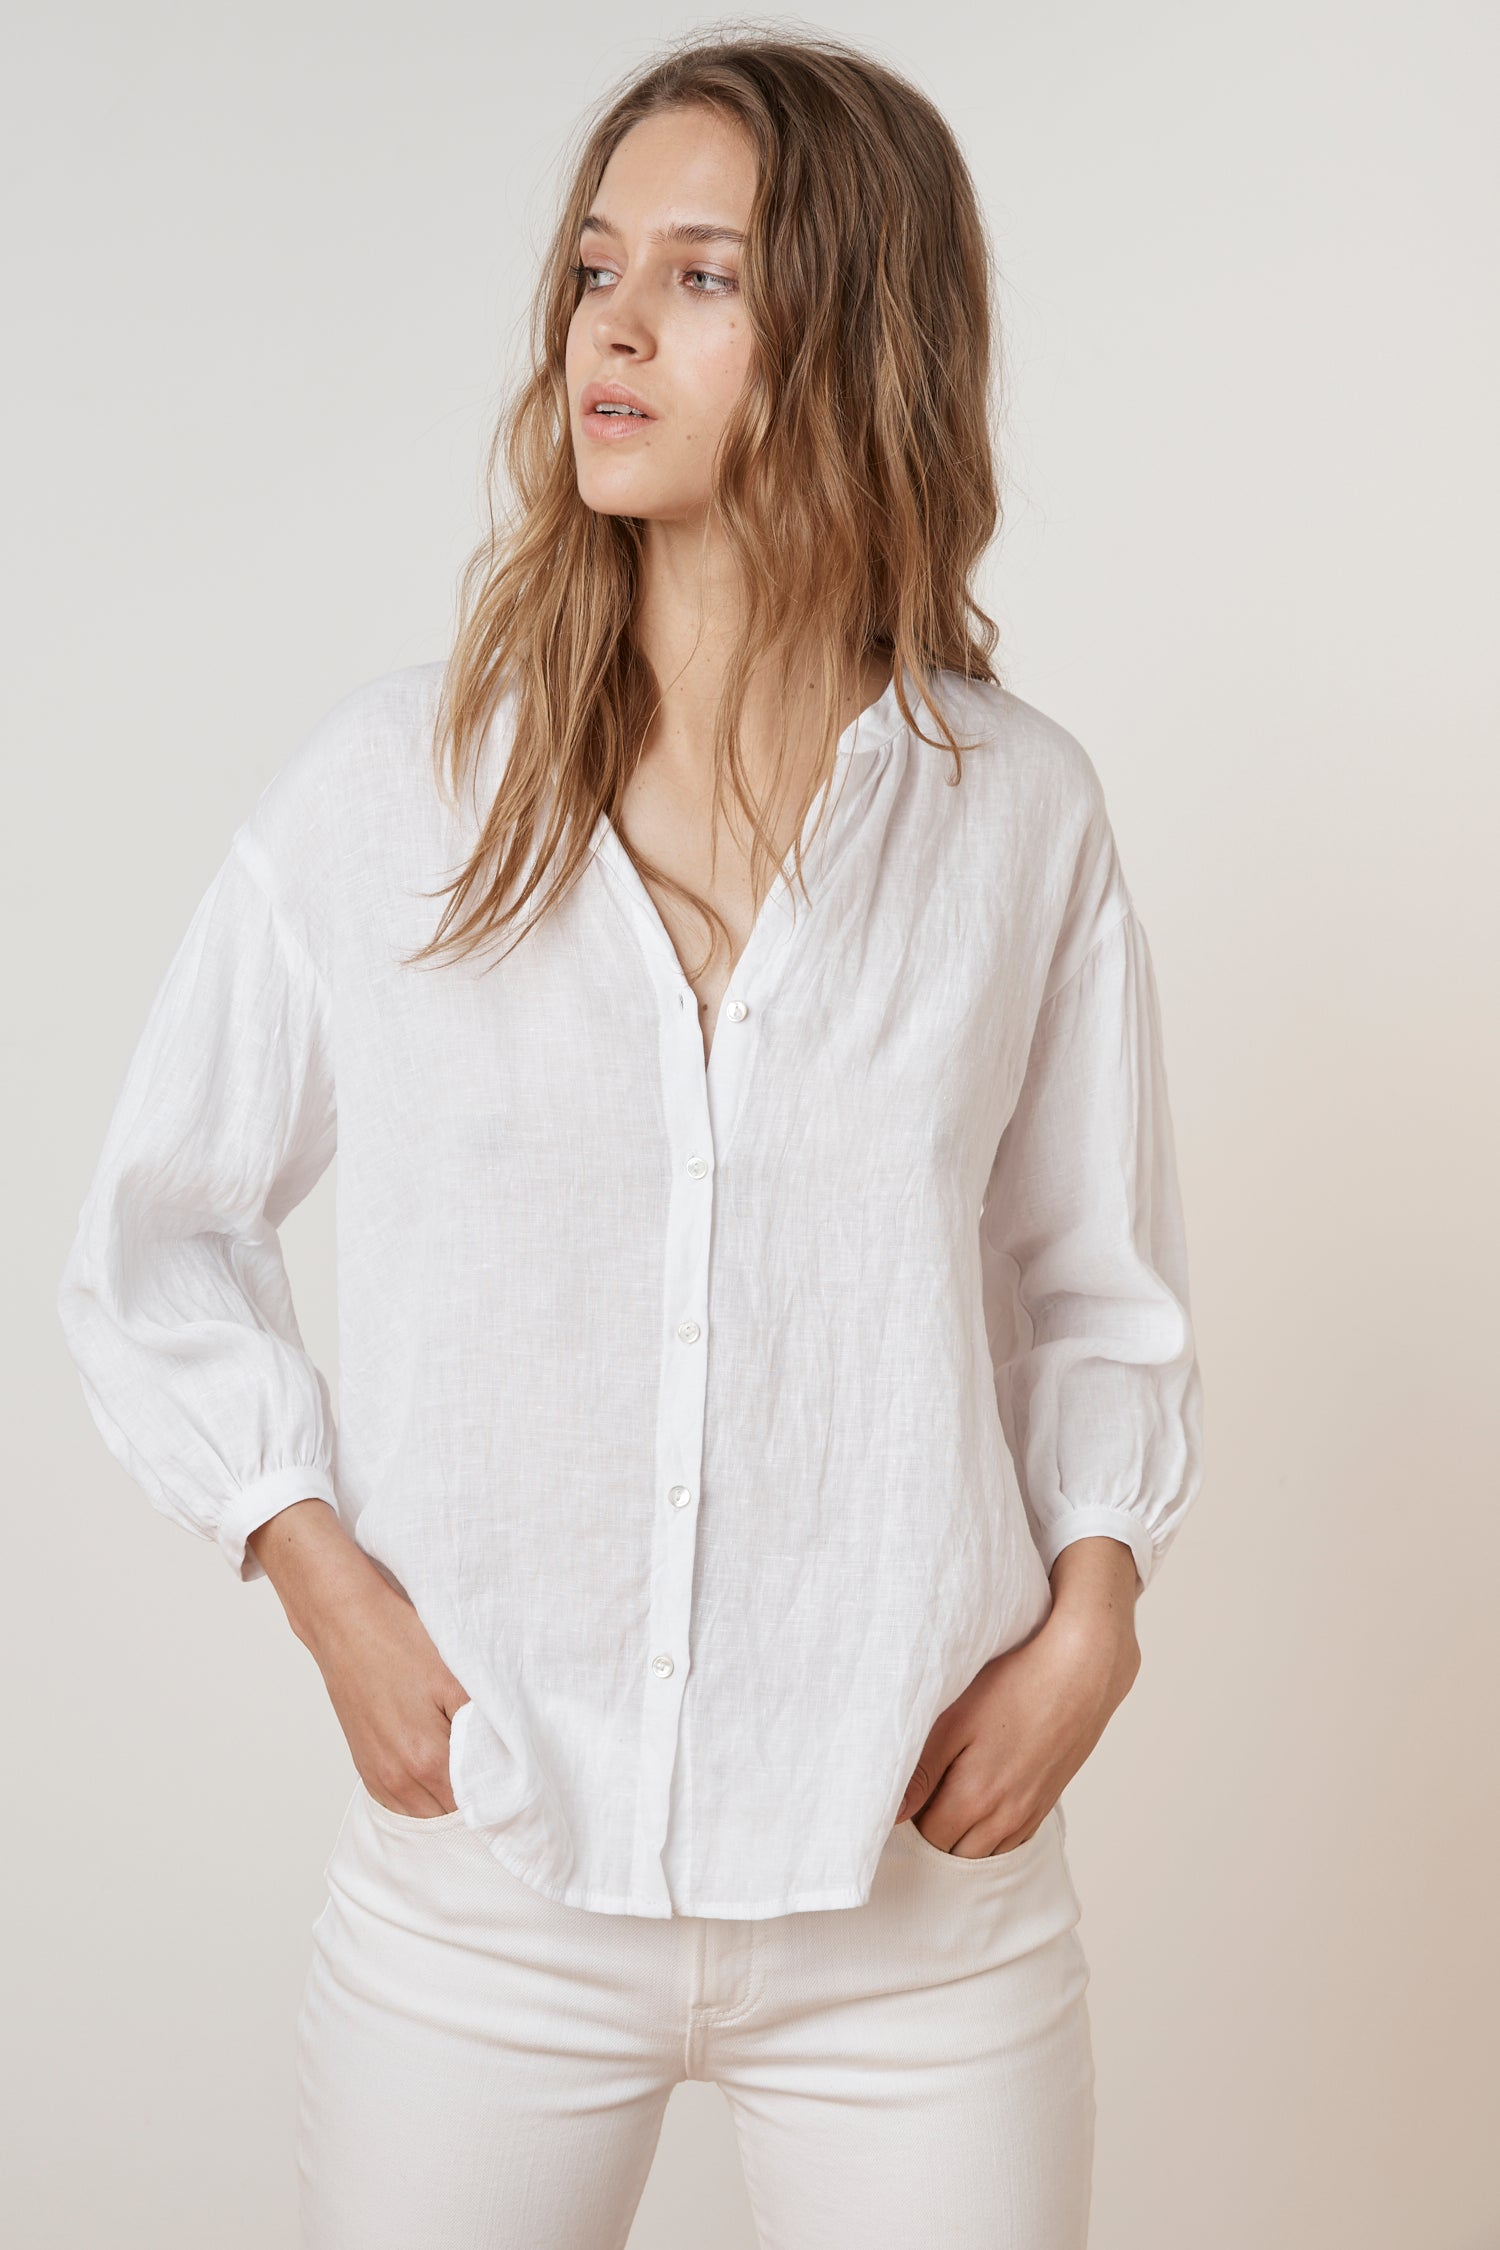 MATEA WOVEN LINEN BUTTON UP BLOUSE IN WHITE